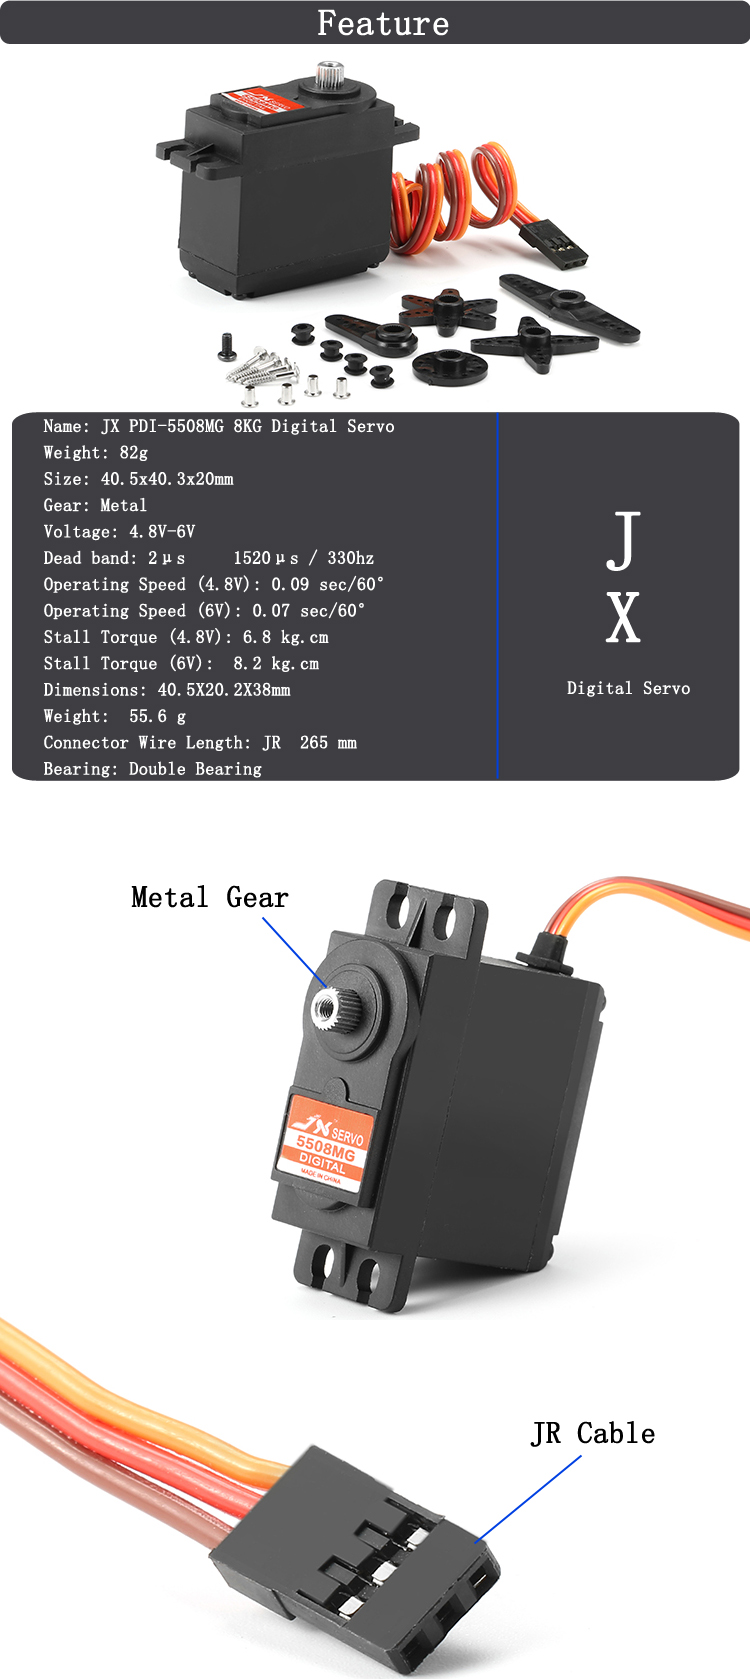 JX PDI-5508MG 8KG Large Torque Metal Gear Digital Servo For RC Helicopter